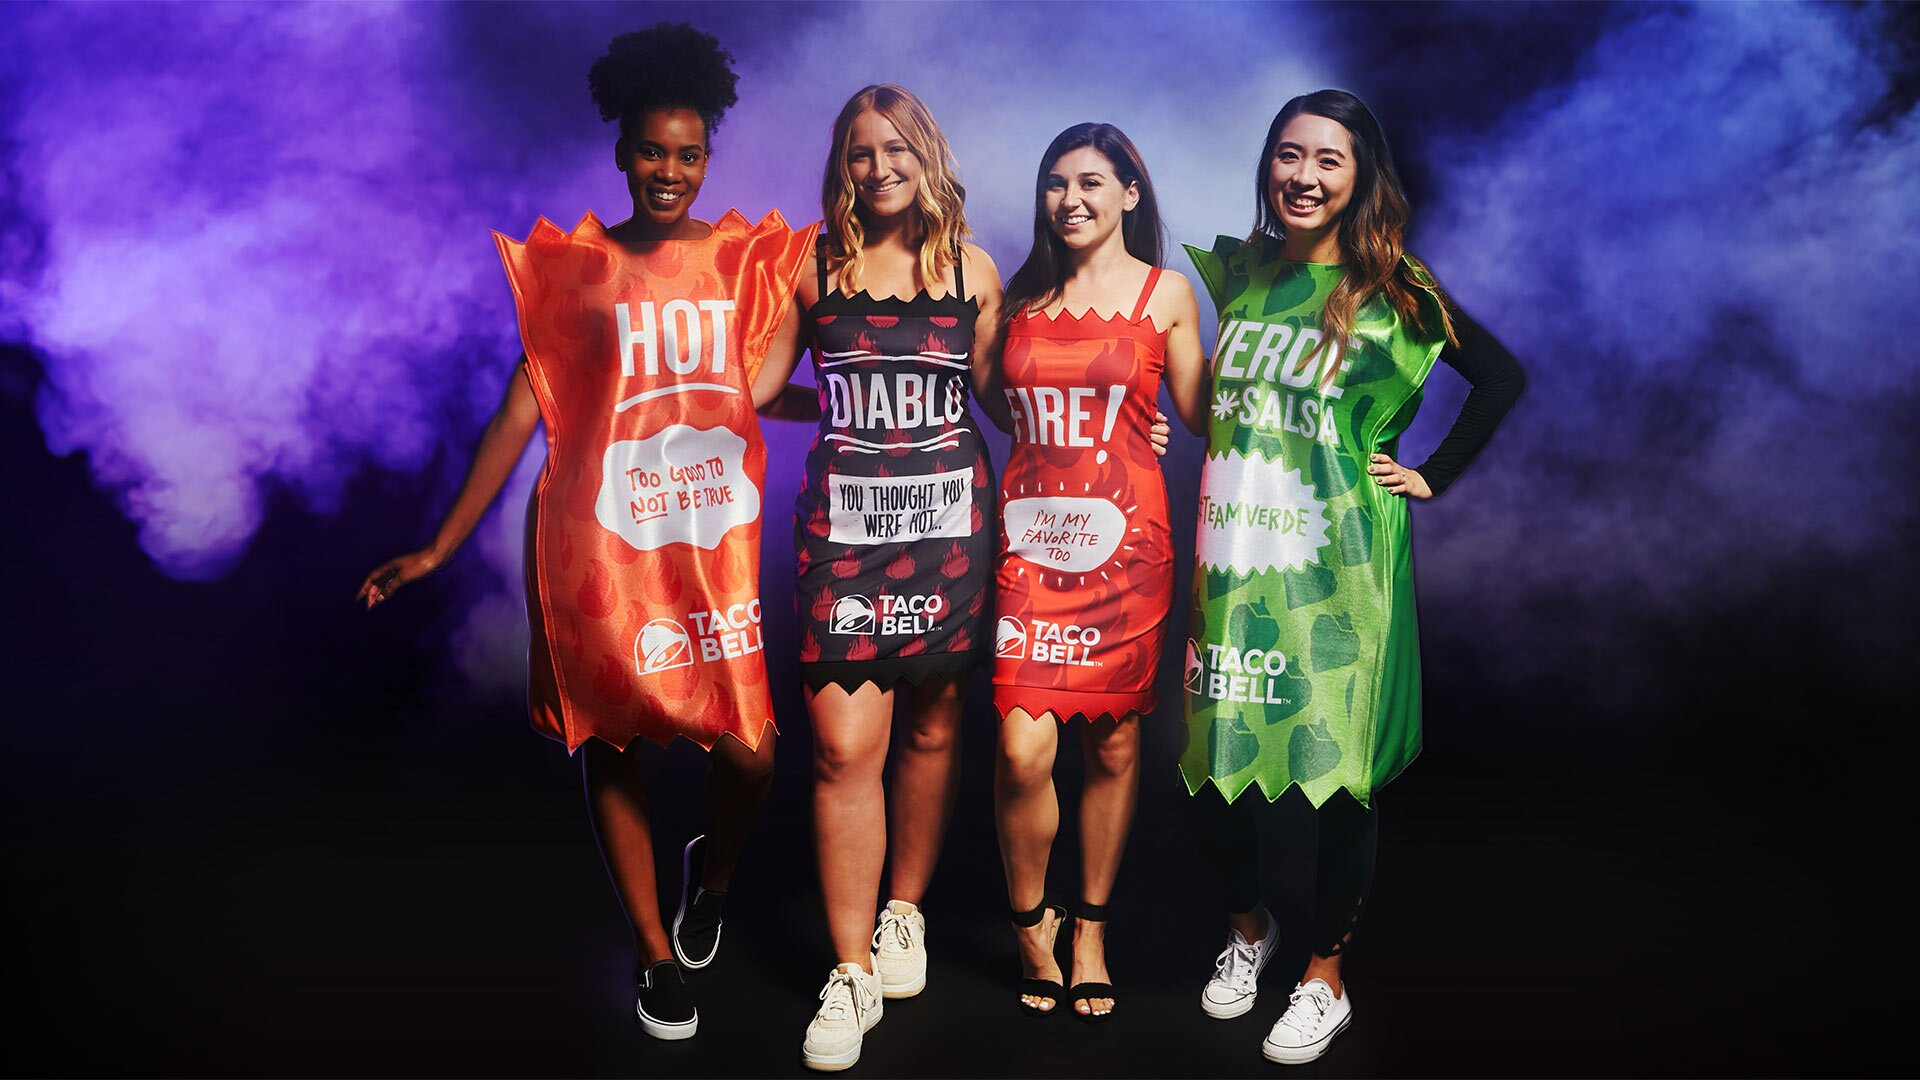 4 People Halloween Costumes.Taco Bell Has A New Halloween Costume Collection People Com